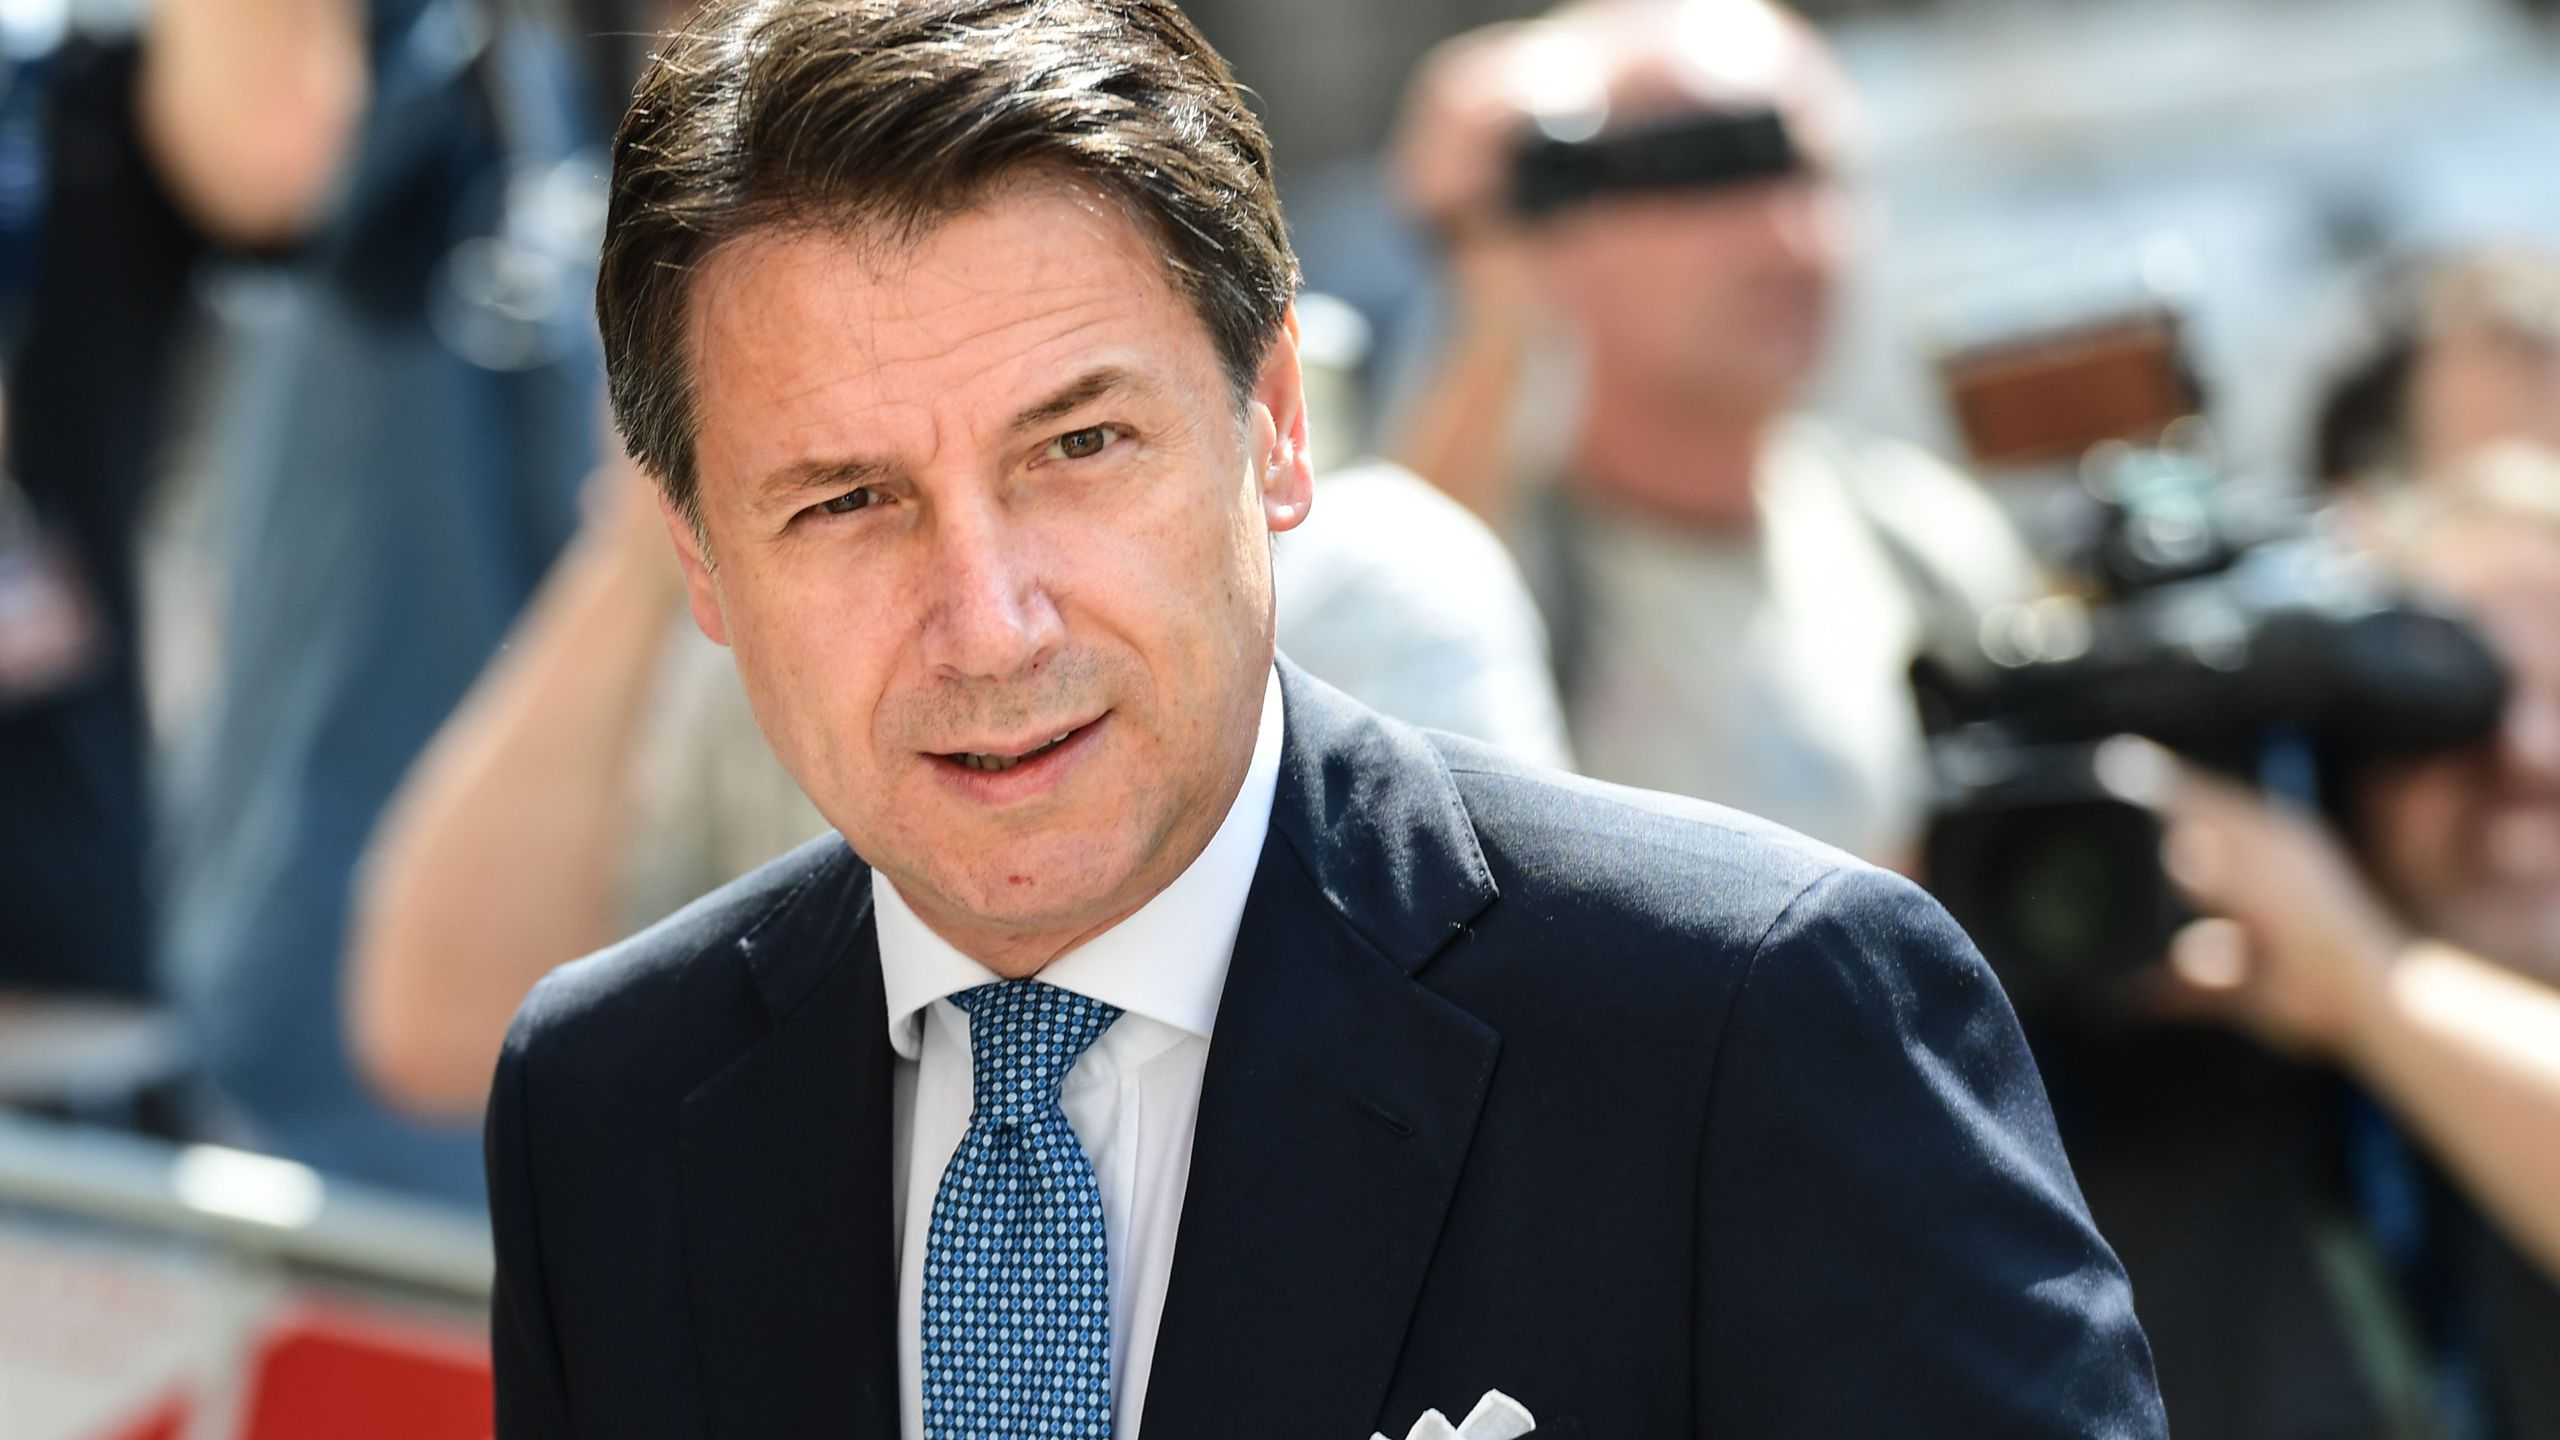 Italys Prime Minister Giuseppe Conte arrives to attend the 100th anniversary of the Italian Banking Association (ABI) on July 12, 2019 in Milan. (Credit: MIGUEL MEDINA/AFP/Getty Images)